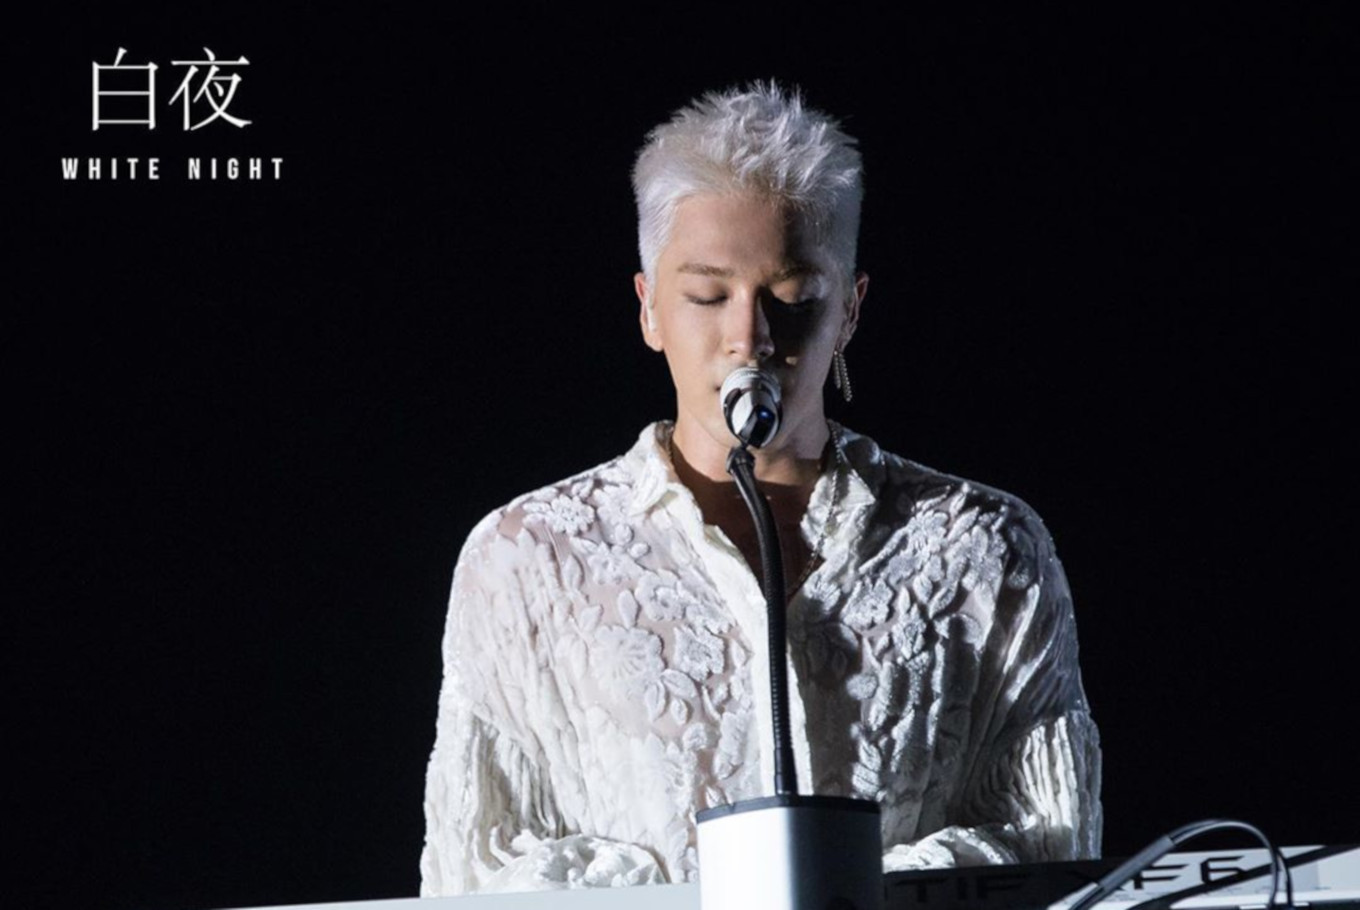 Bigbang S Taeyang To Air Solo Documentary Series On Youtube Entertainment The Jakarta Post